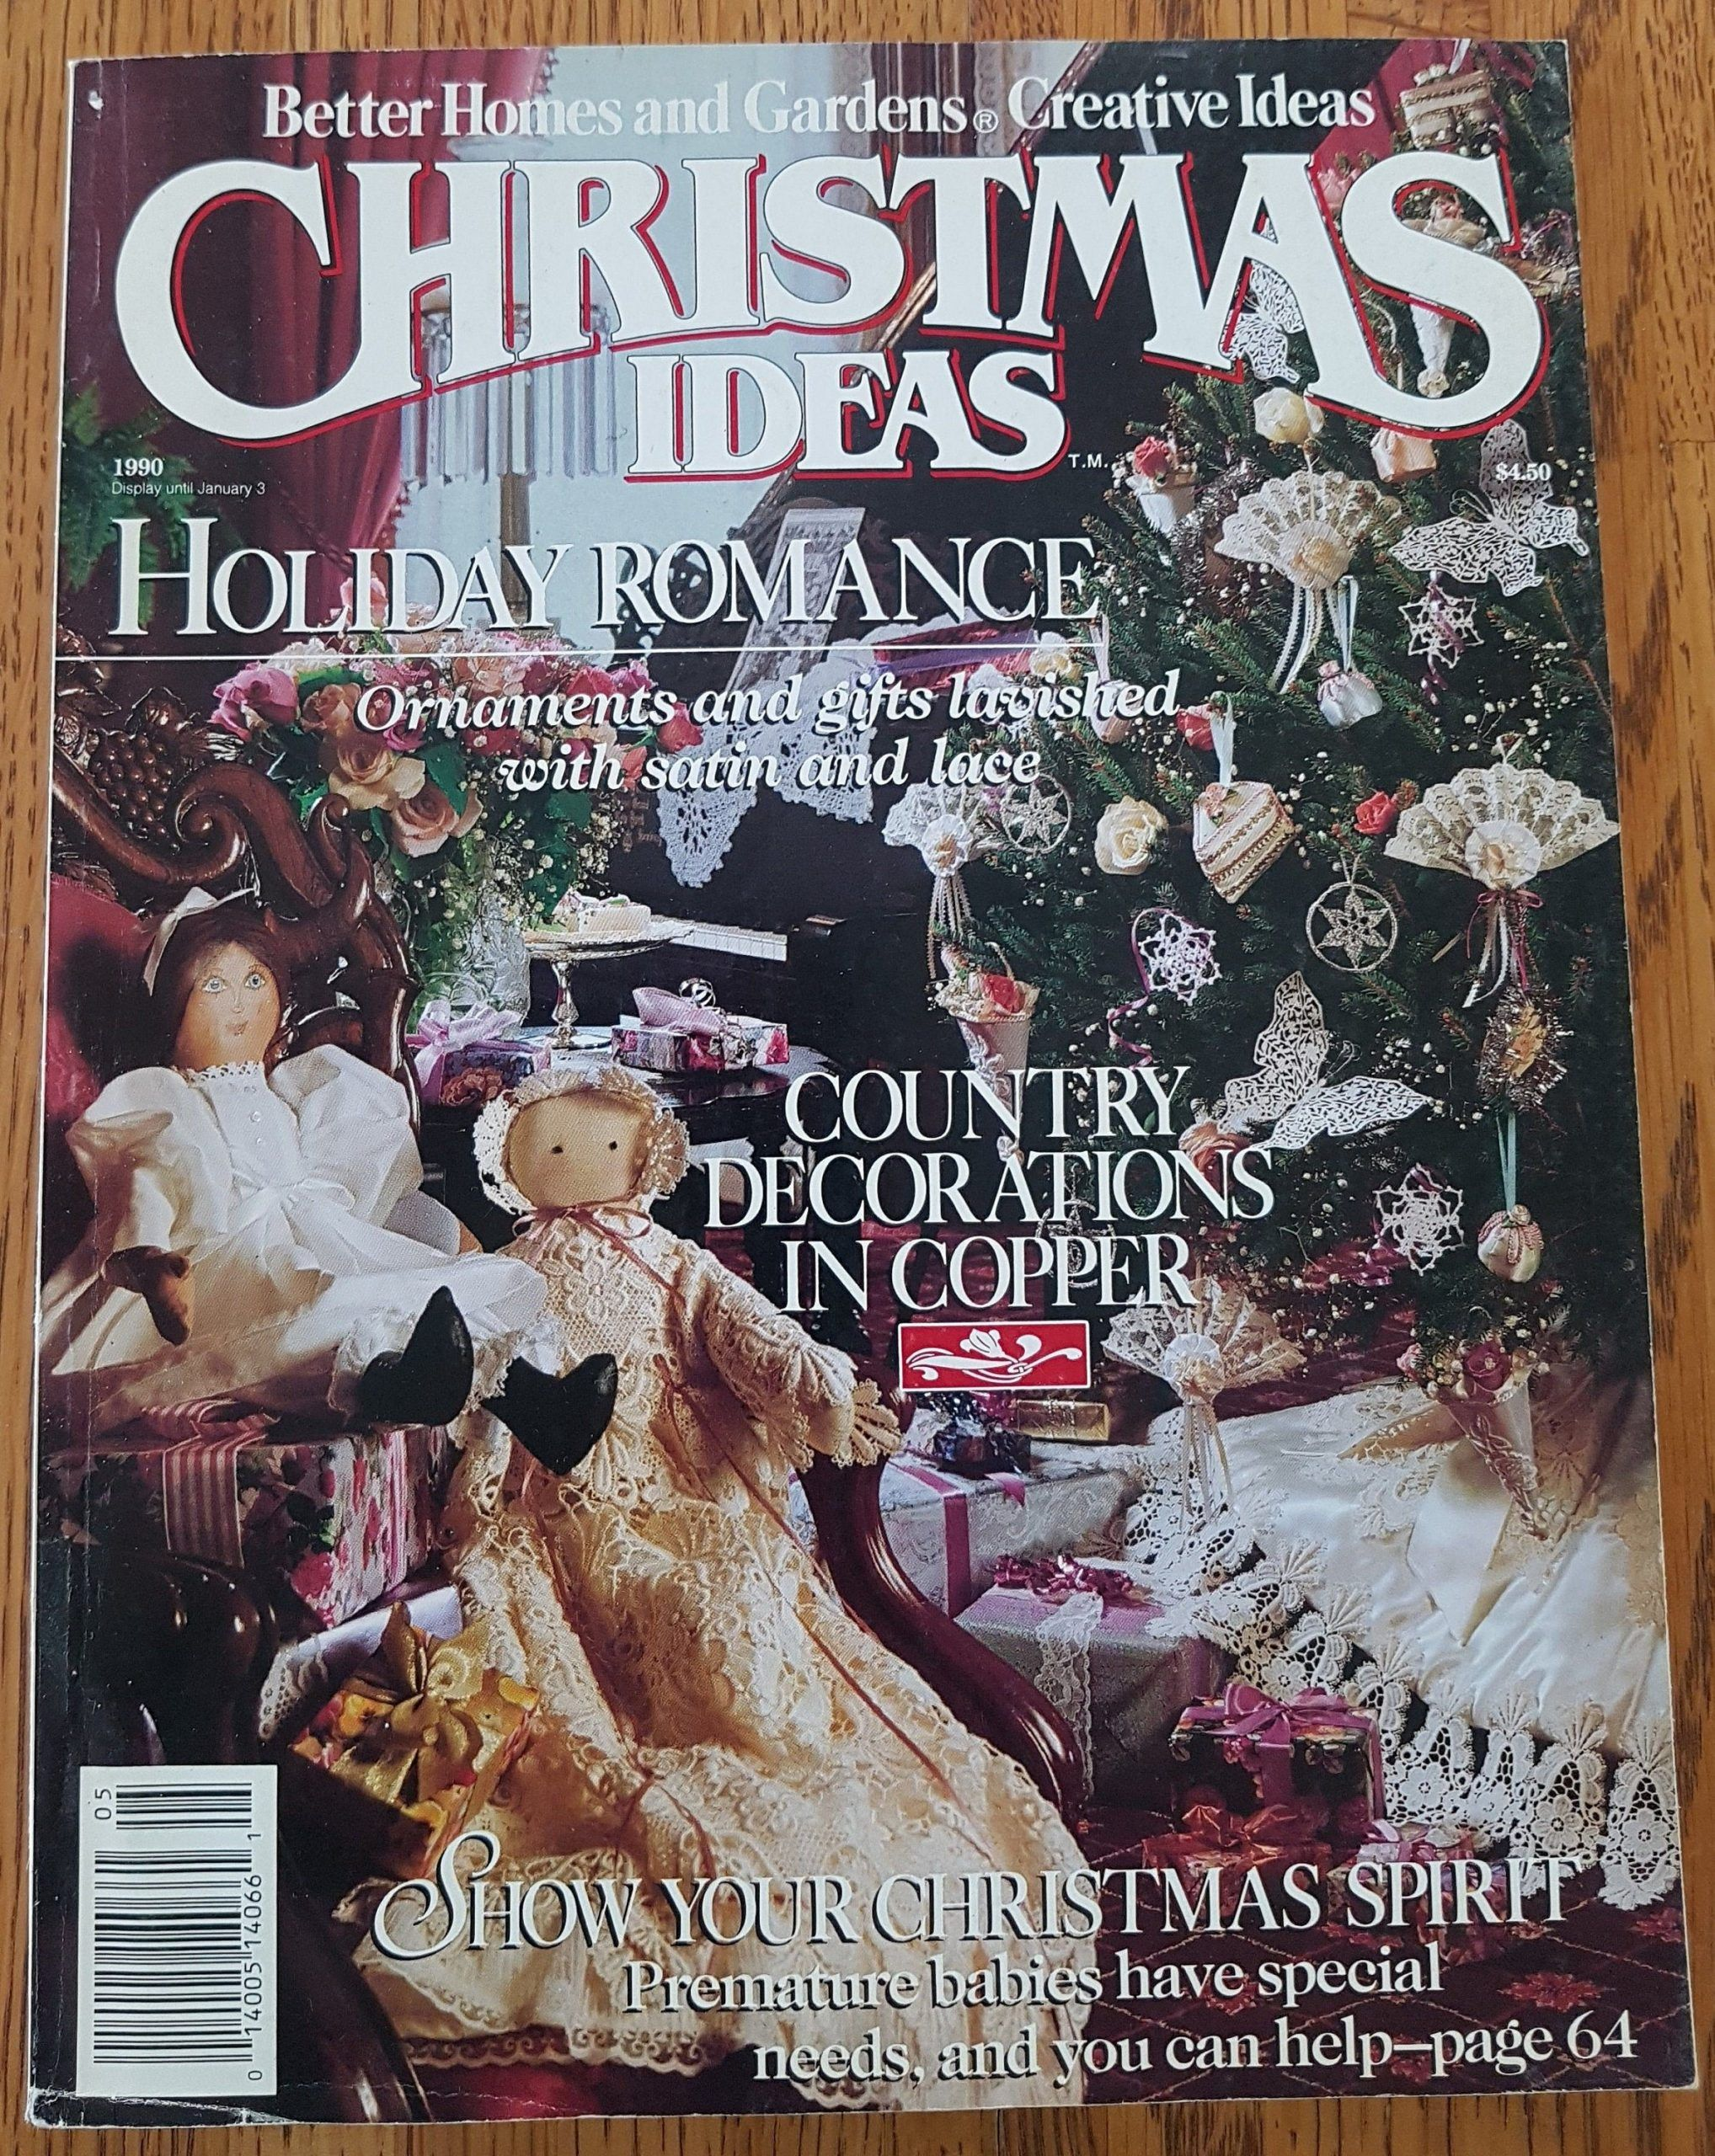 Christmas Ideas Magazine 1990 From Better Homes And Gardens Creative Ideas Christmas Creative Gard In 2020 Unique Garden Art Recycled Garden Art Creative Gardening